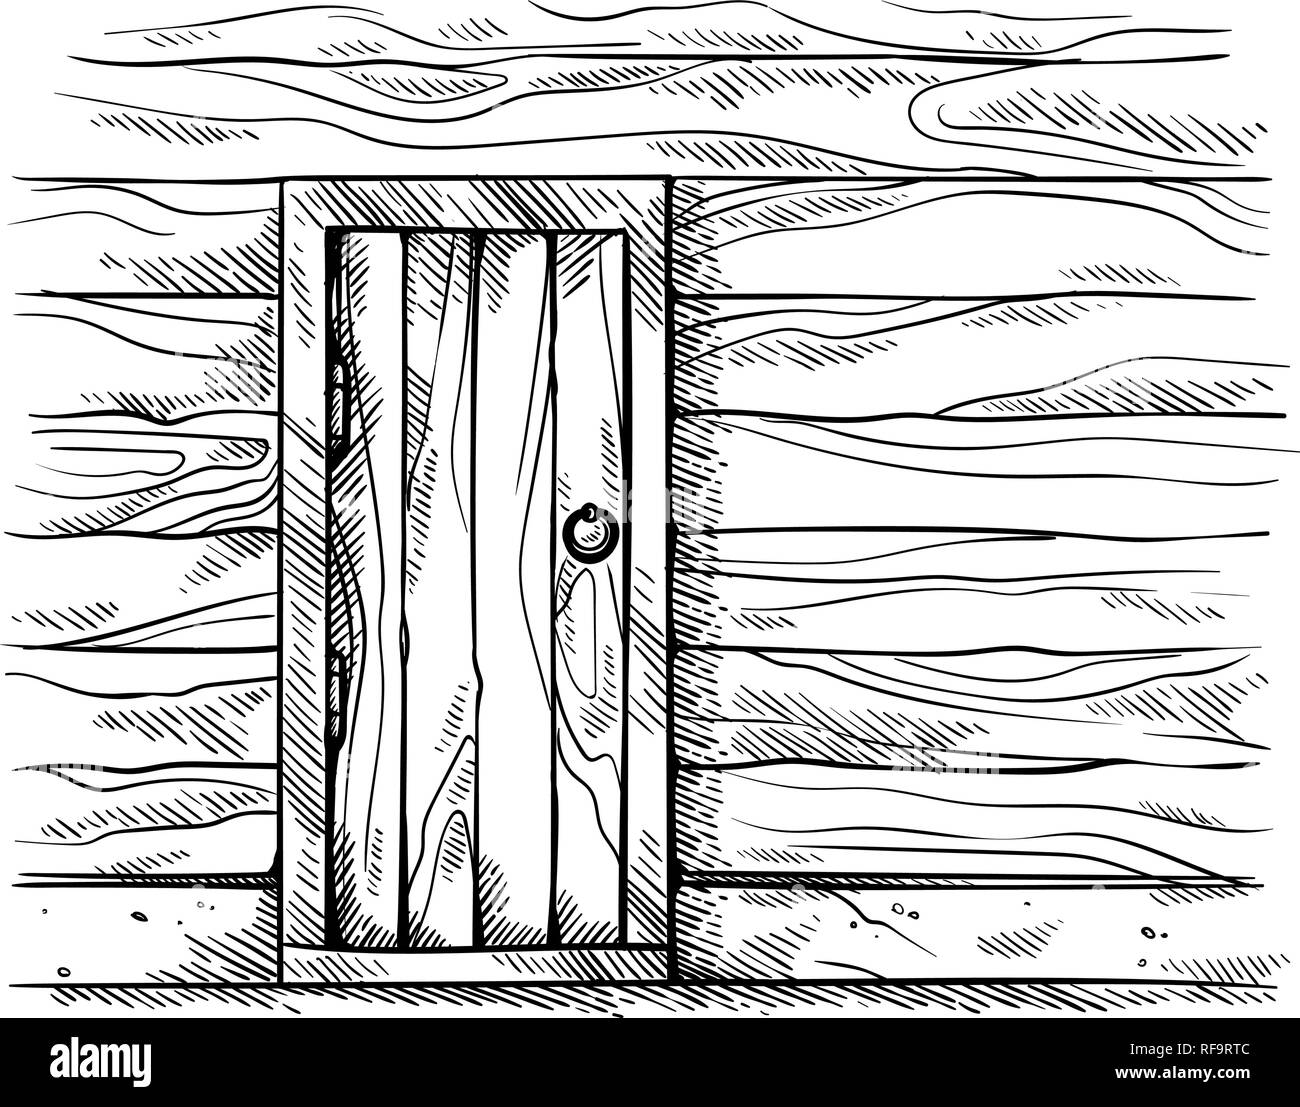 hight resolution of sketch hand drawn old rectangular wooden door in wall wooden frame vector illustration